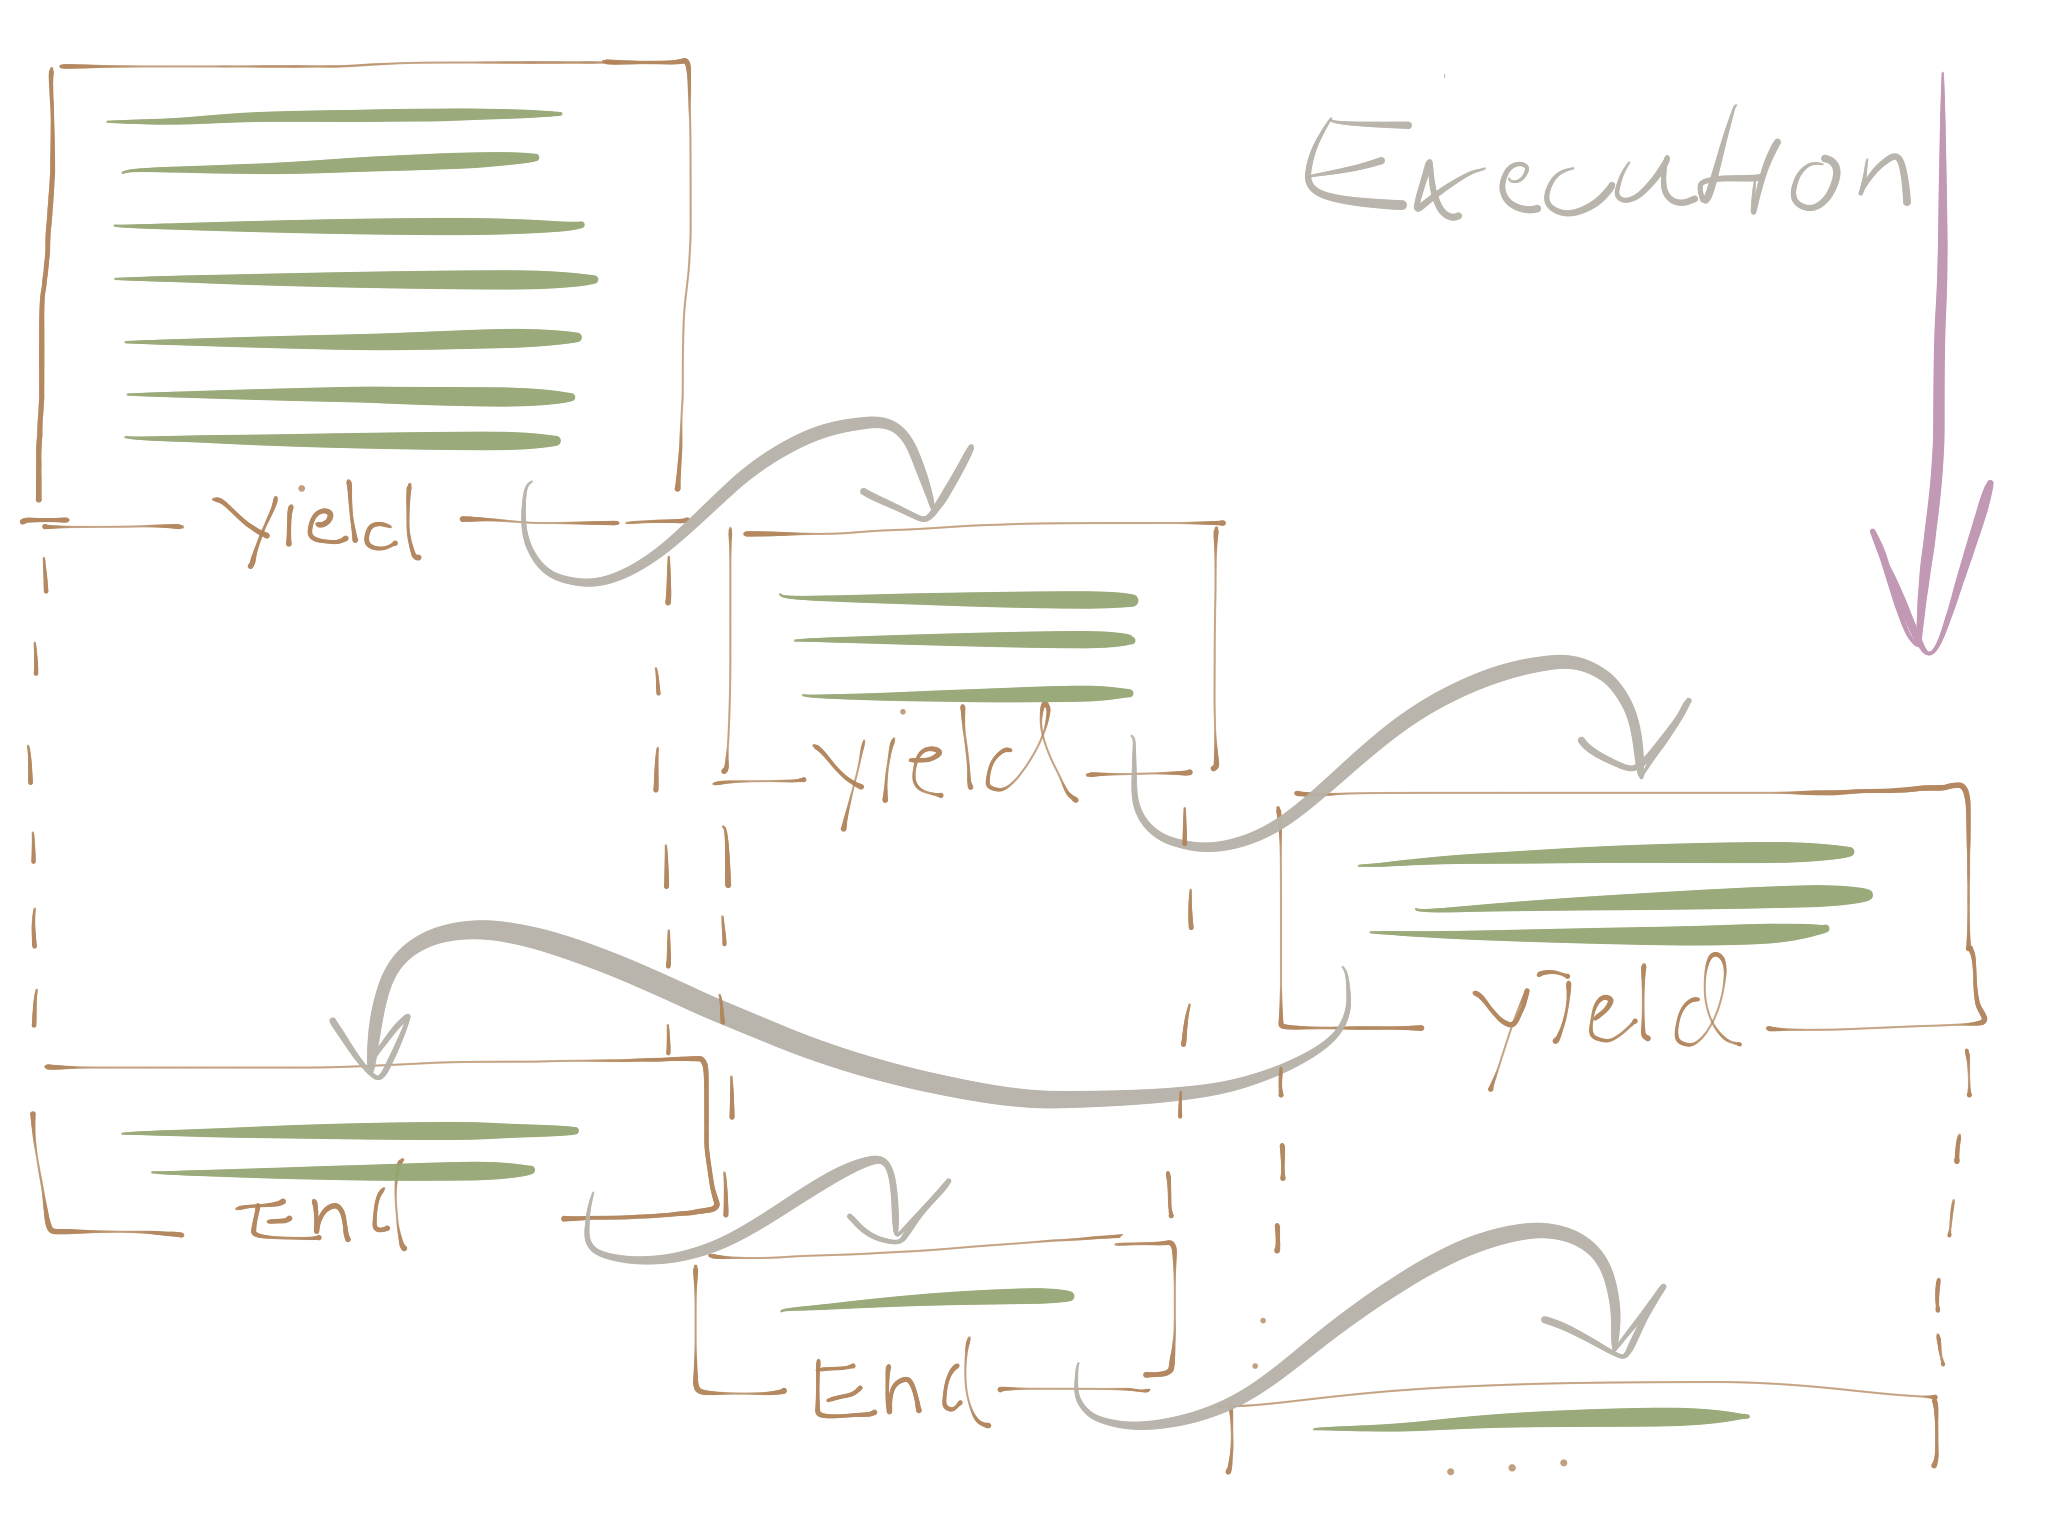 Sketch of tasks yielding